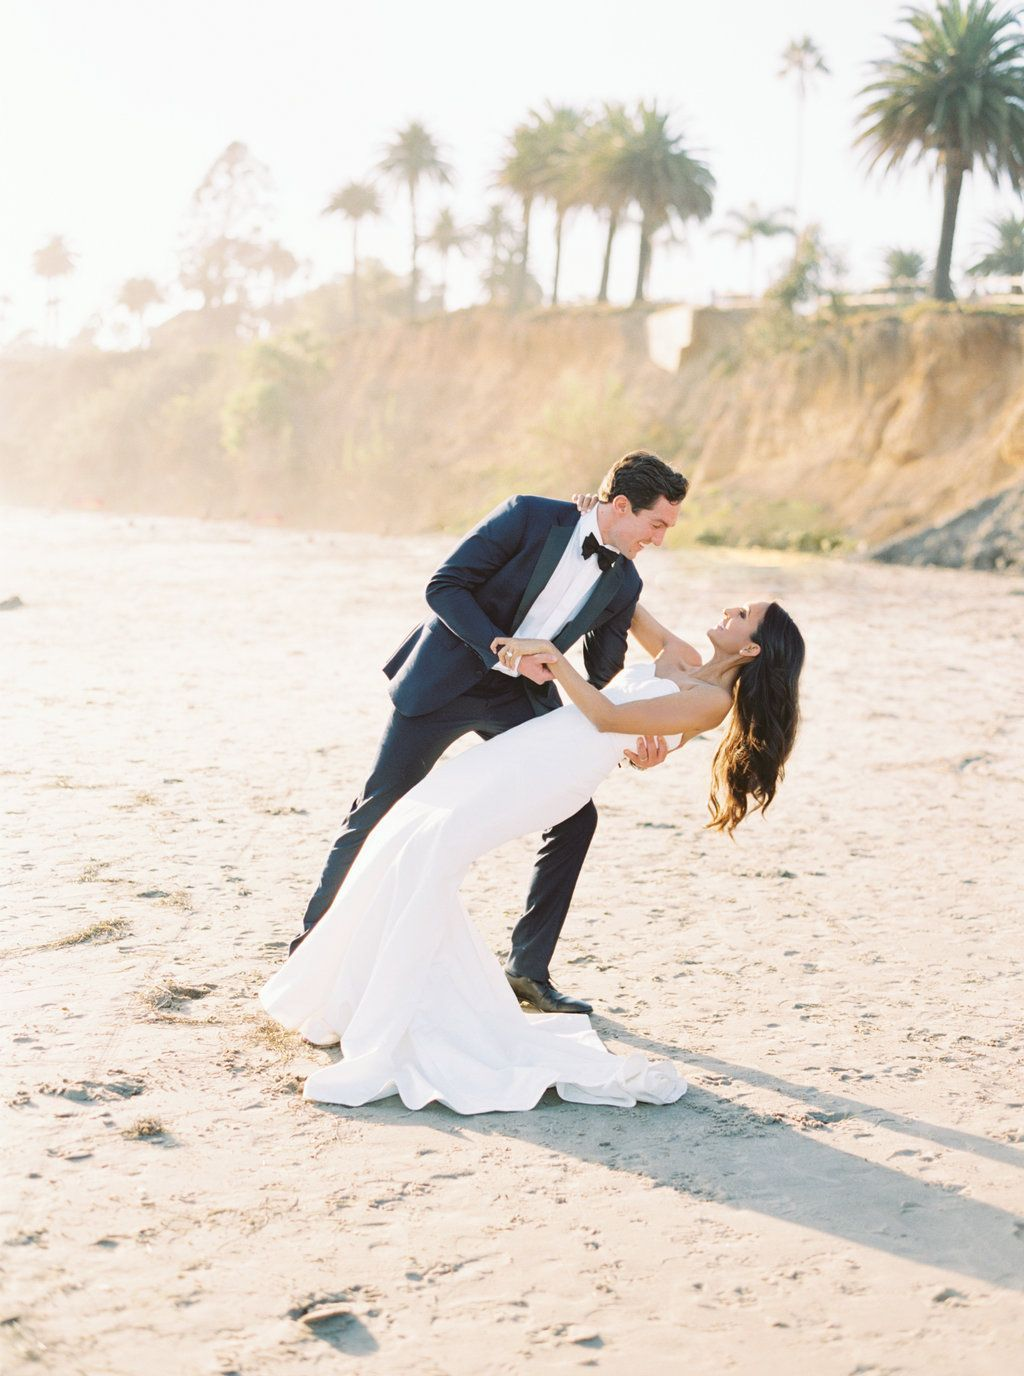 Sunset Wedding Photo Coastal Beach In Montecito Musthaveweddingphotos